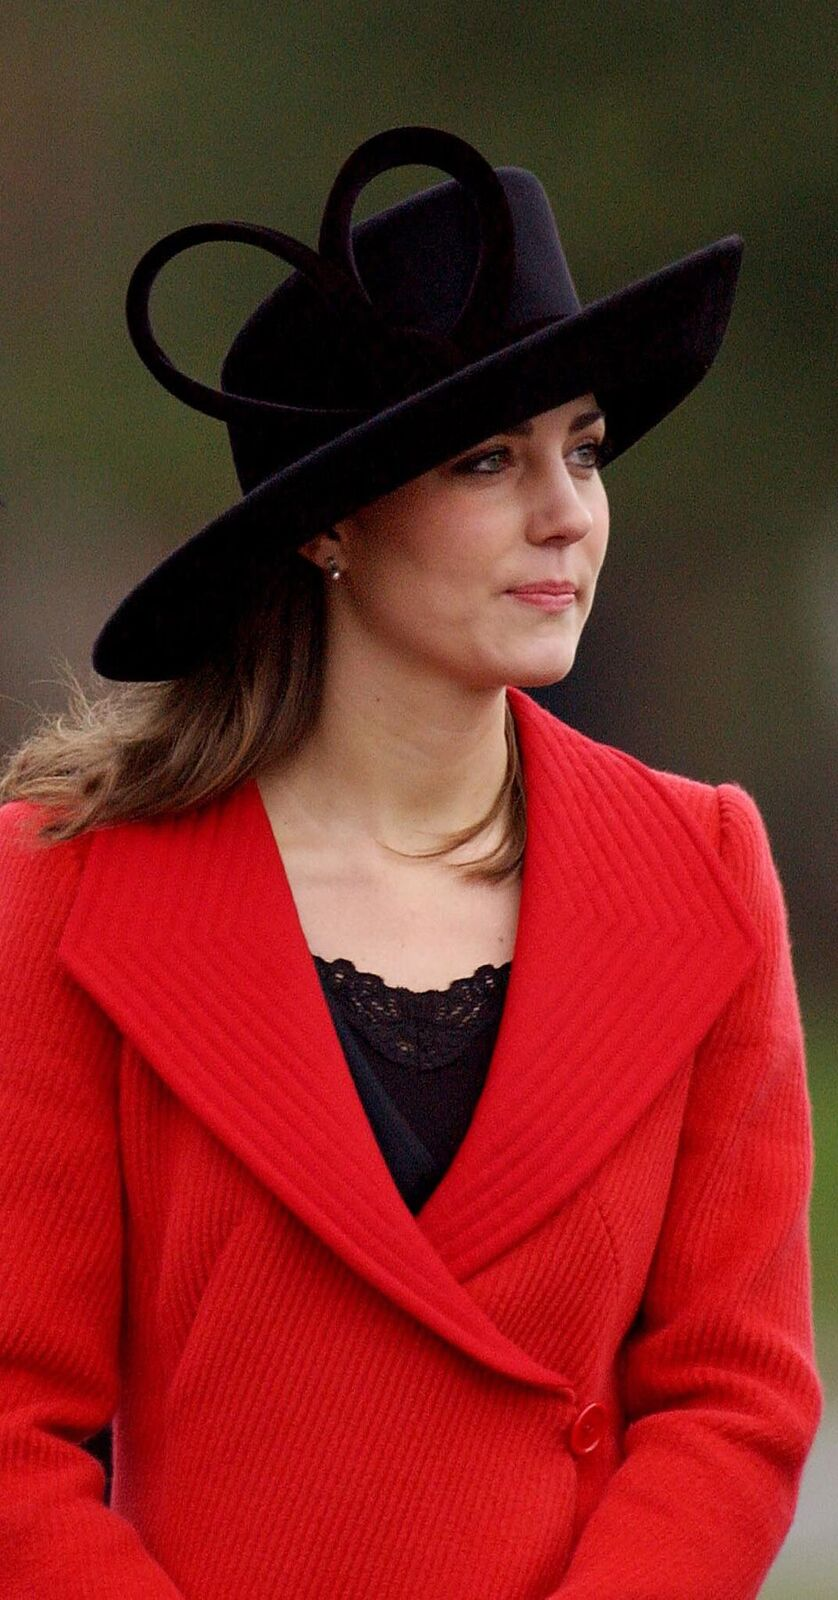 Kate Middleton, Prince Williams's girlfriend, attends the Sovereign's Parade at the Royal Military Academy Sandhurst on December 15, 2006 in Sandhurst, England | Source: Getty Images